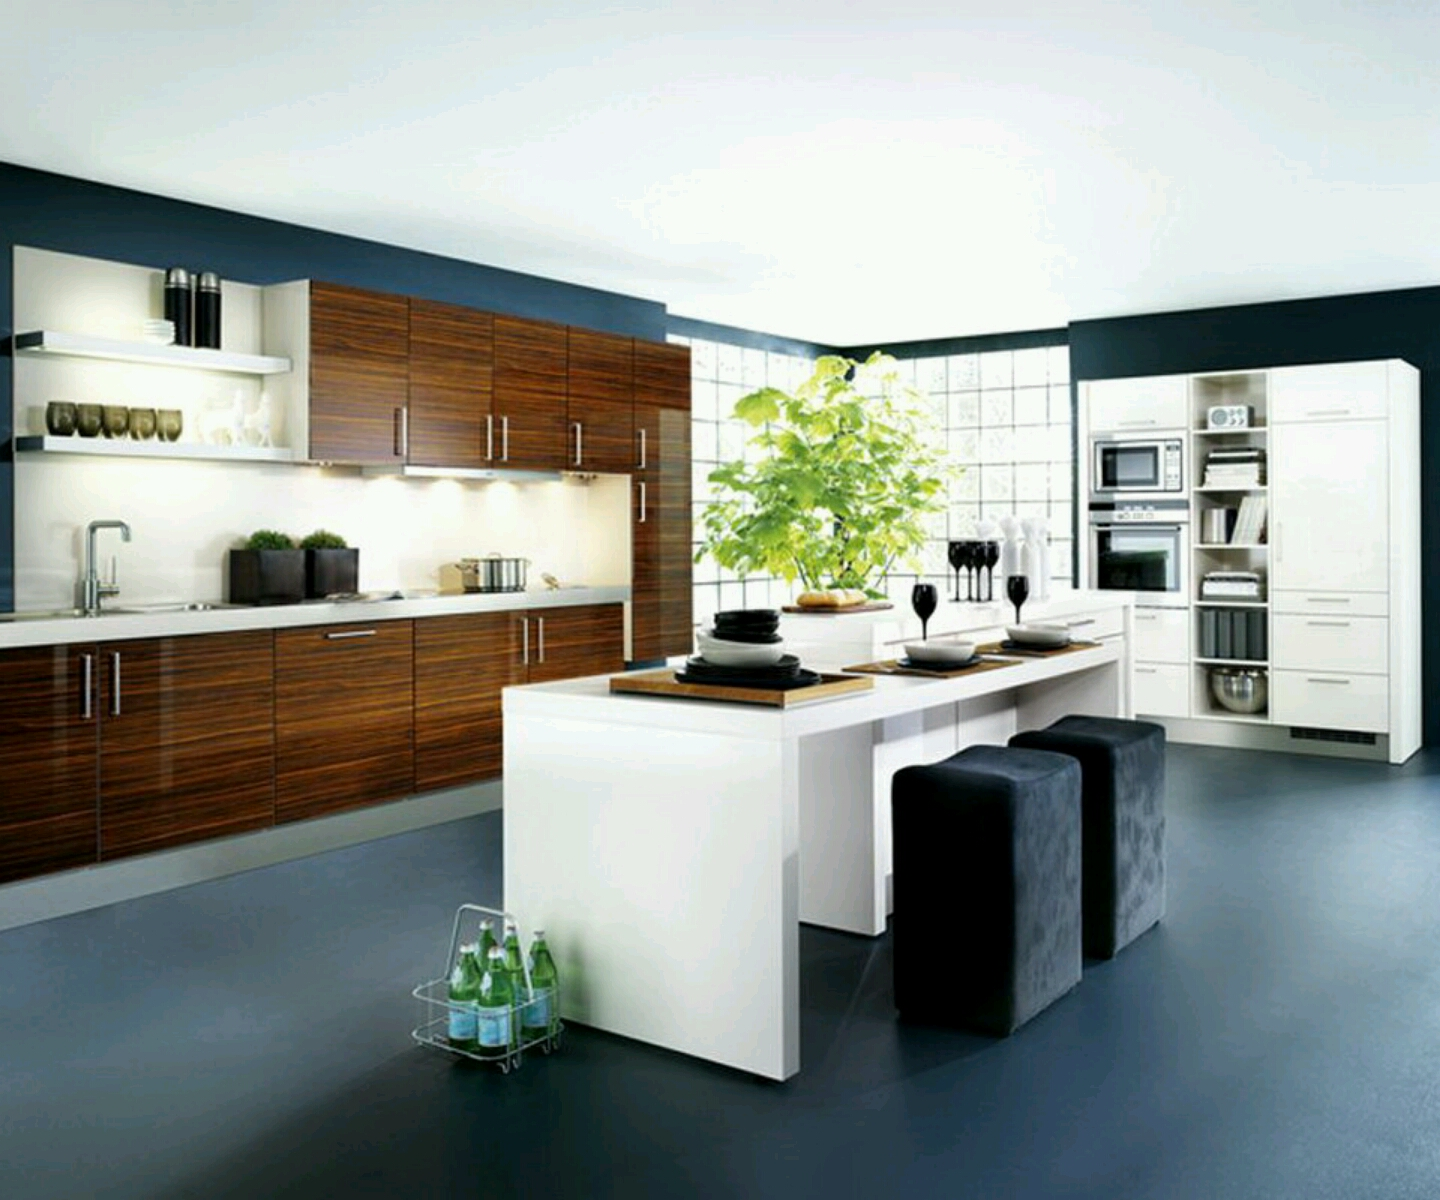 new home designs latest kitchen cabinets designs modern ForKitchen Designs Contemporary